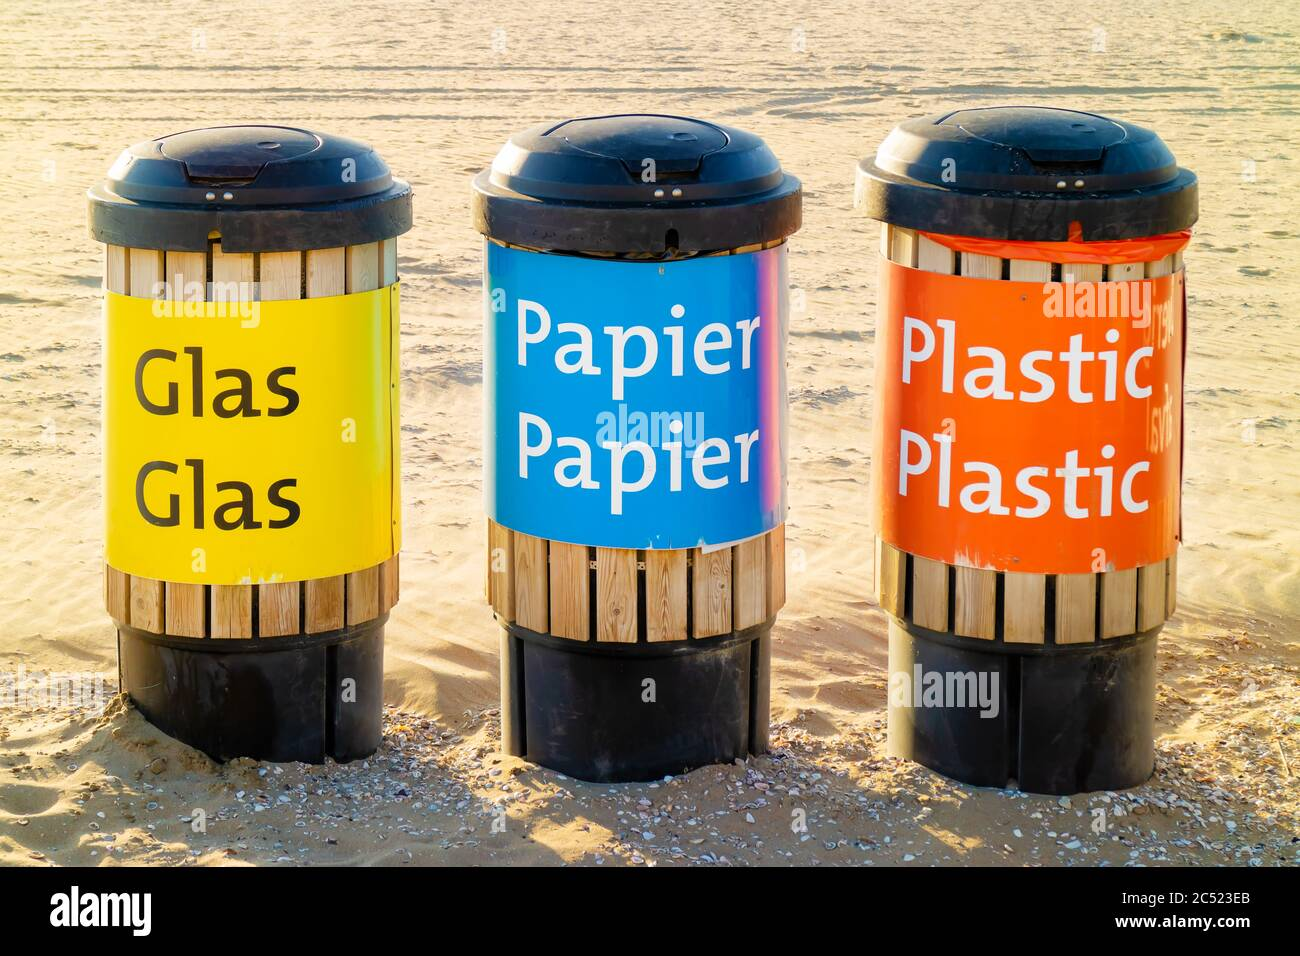 Dutch recycle waste bins for glass, paper and plastics on a beach Stock Photo